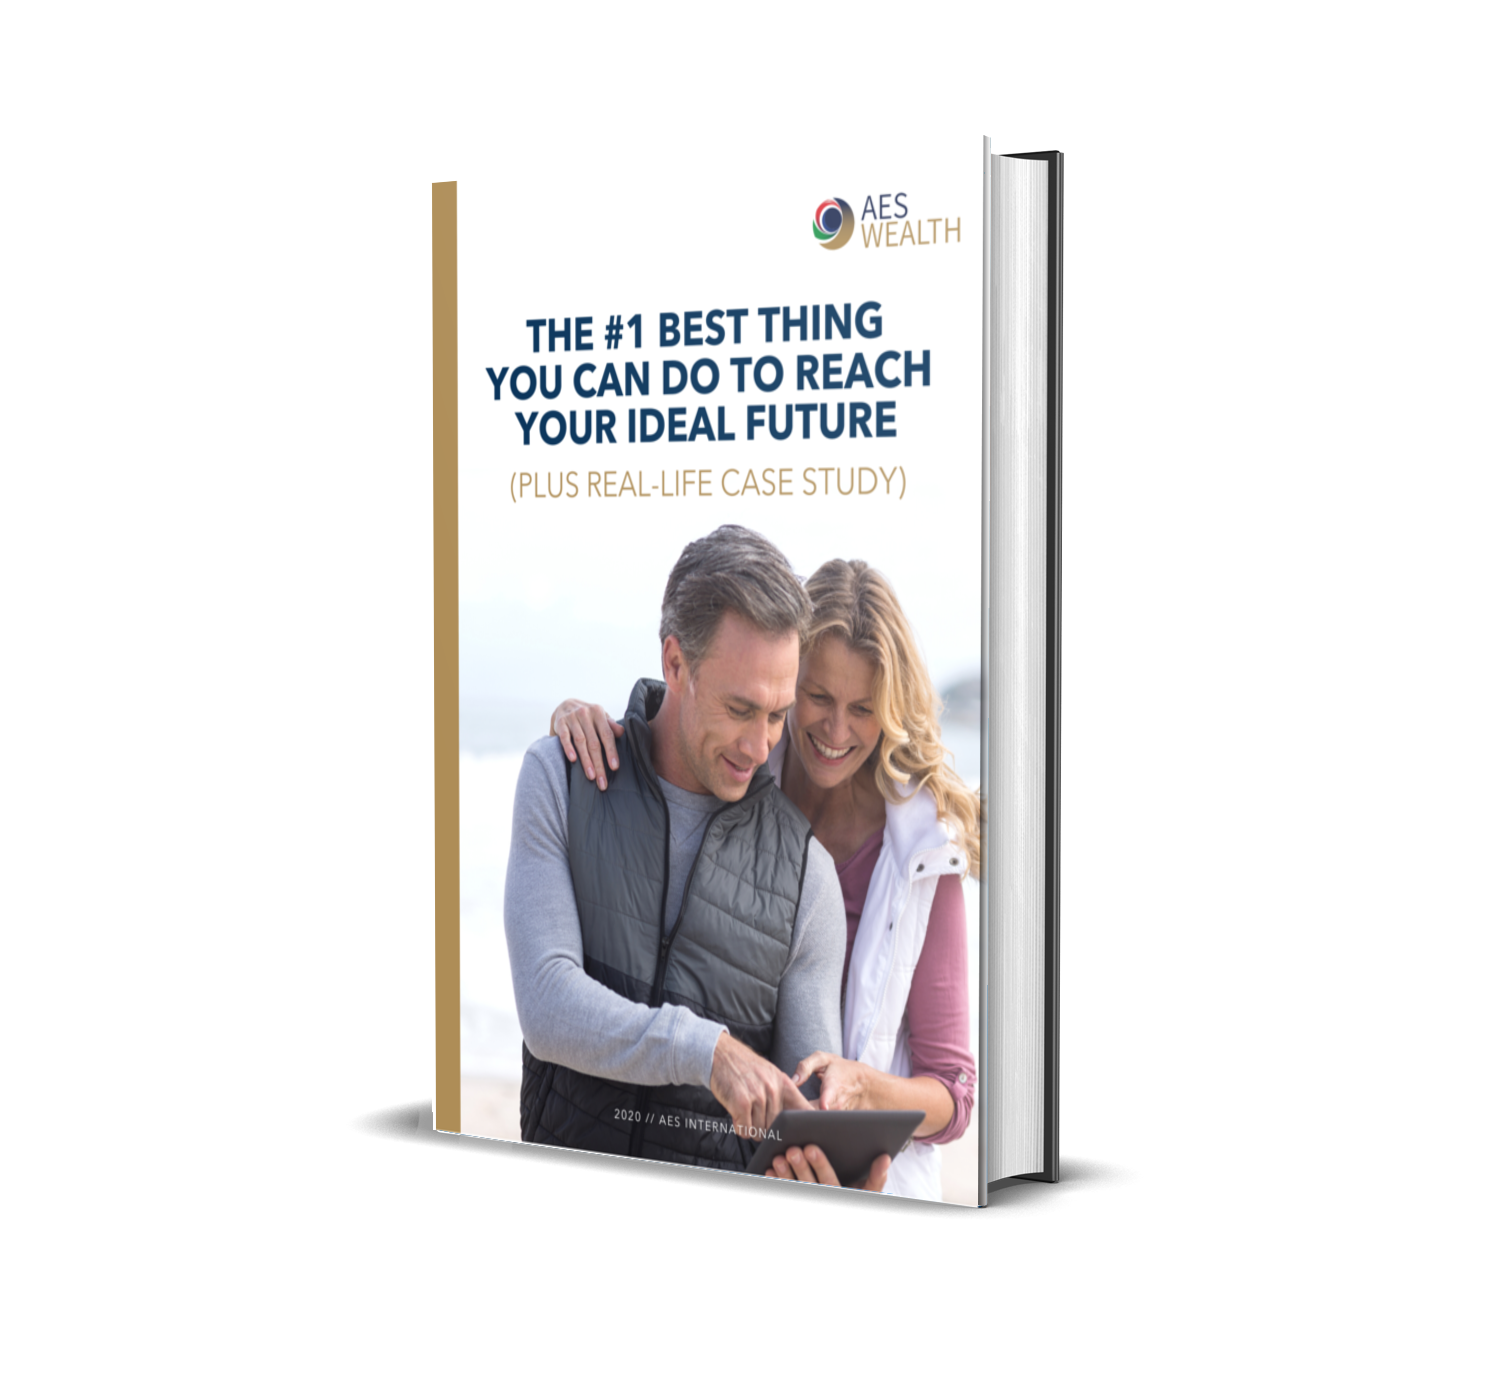 The #1 best thing you can do to reach your ideal future